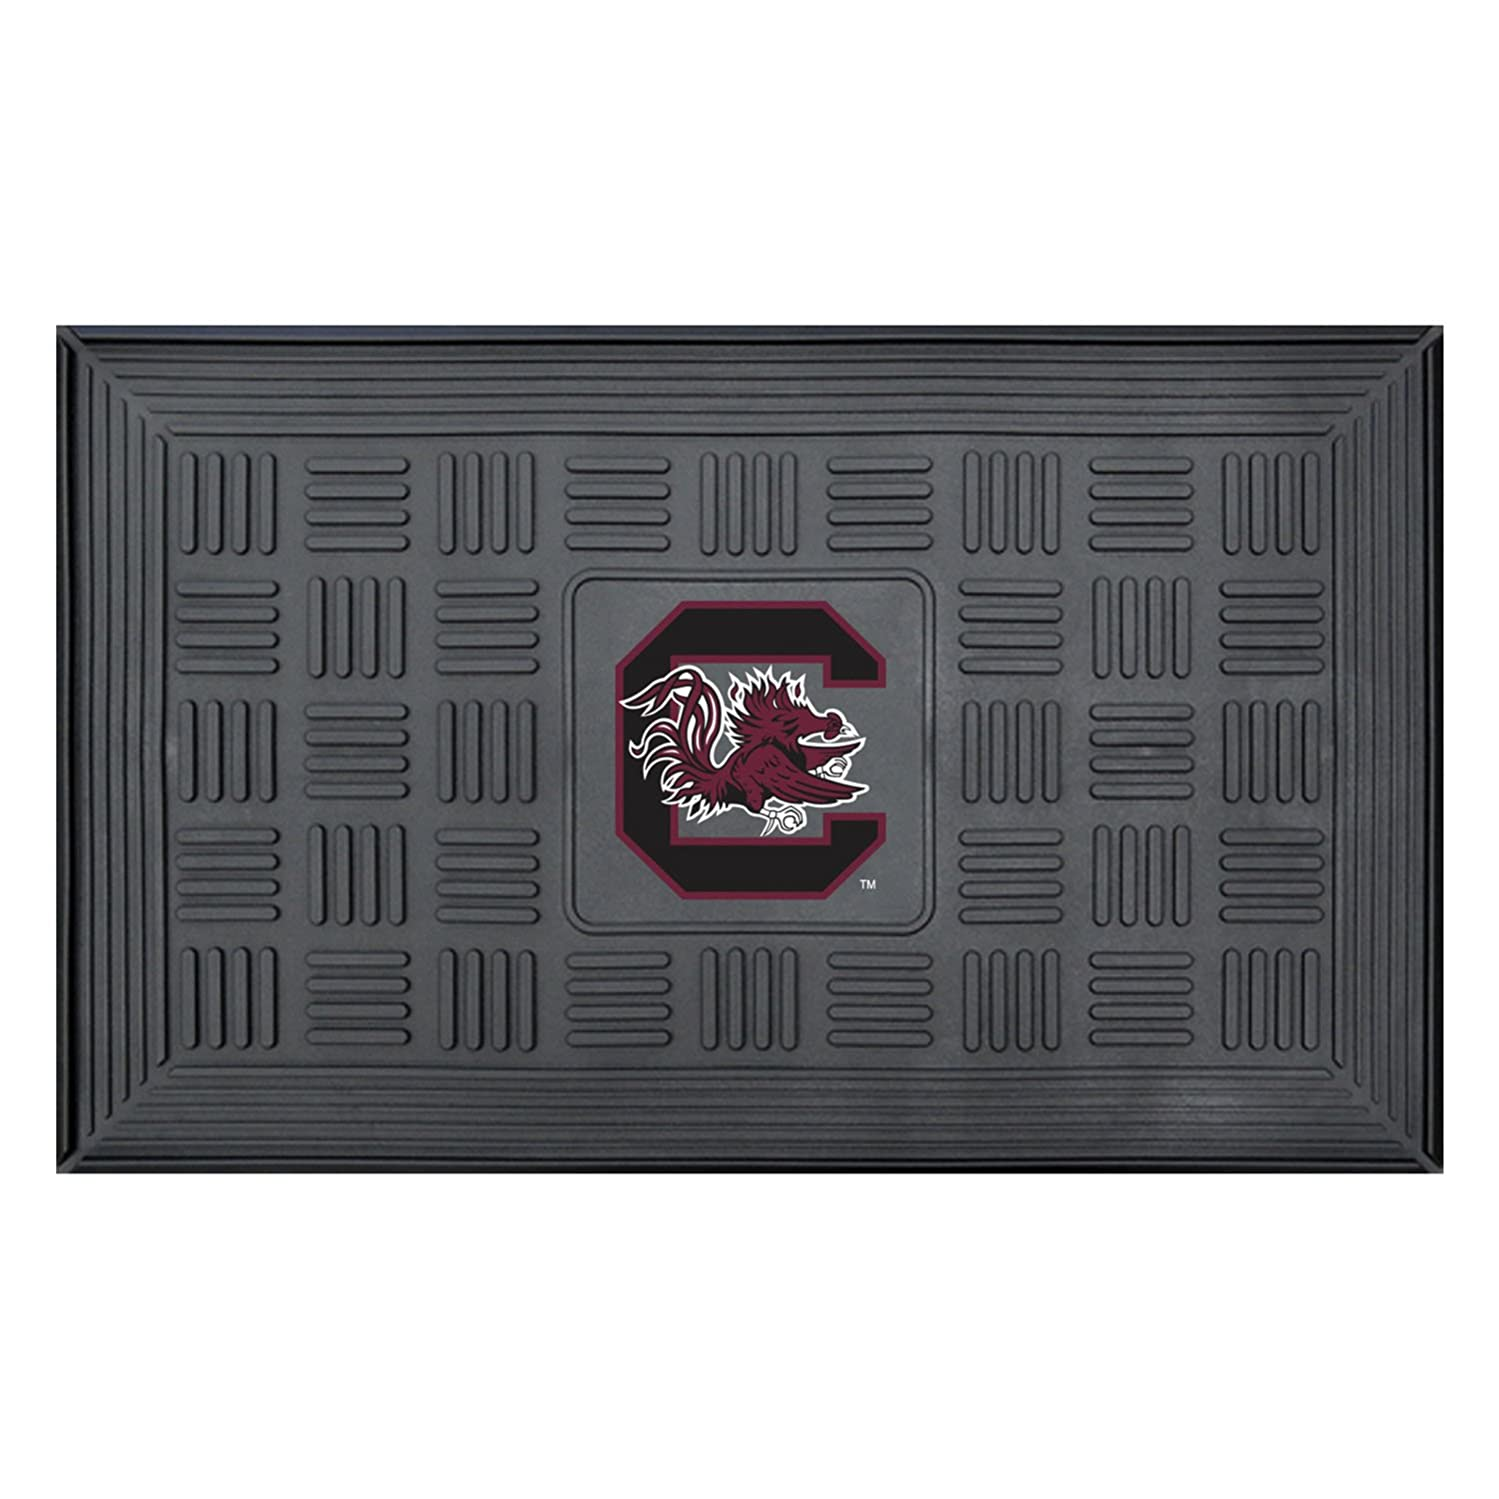 FANMATS NCAA University of South Carolina Gamecocks Vinyl Door Mat